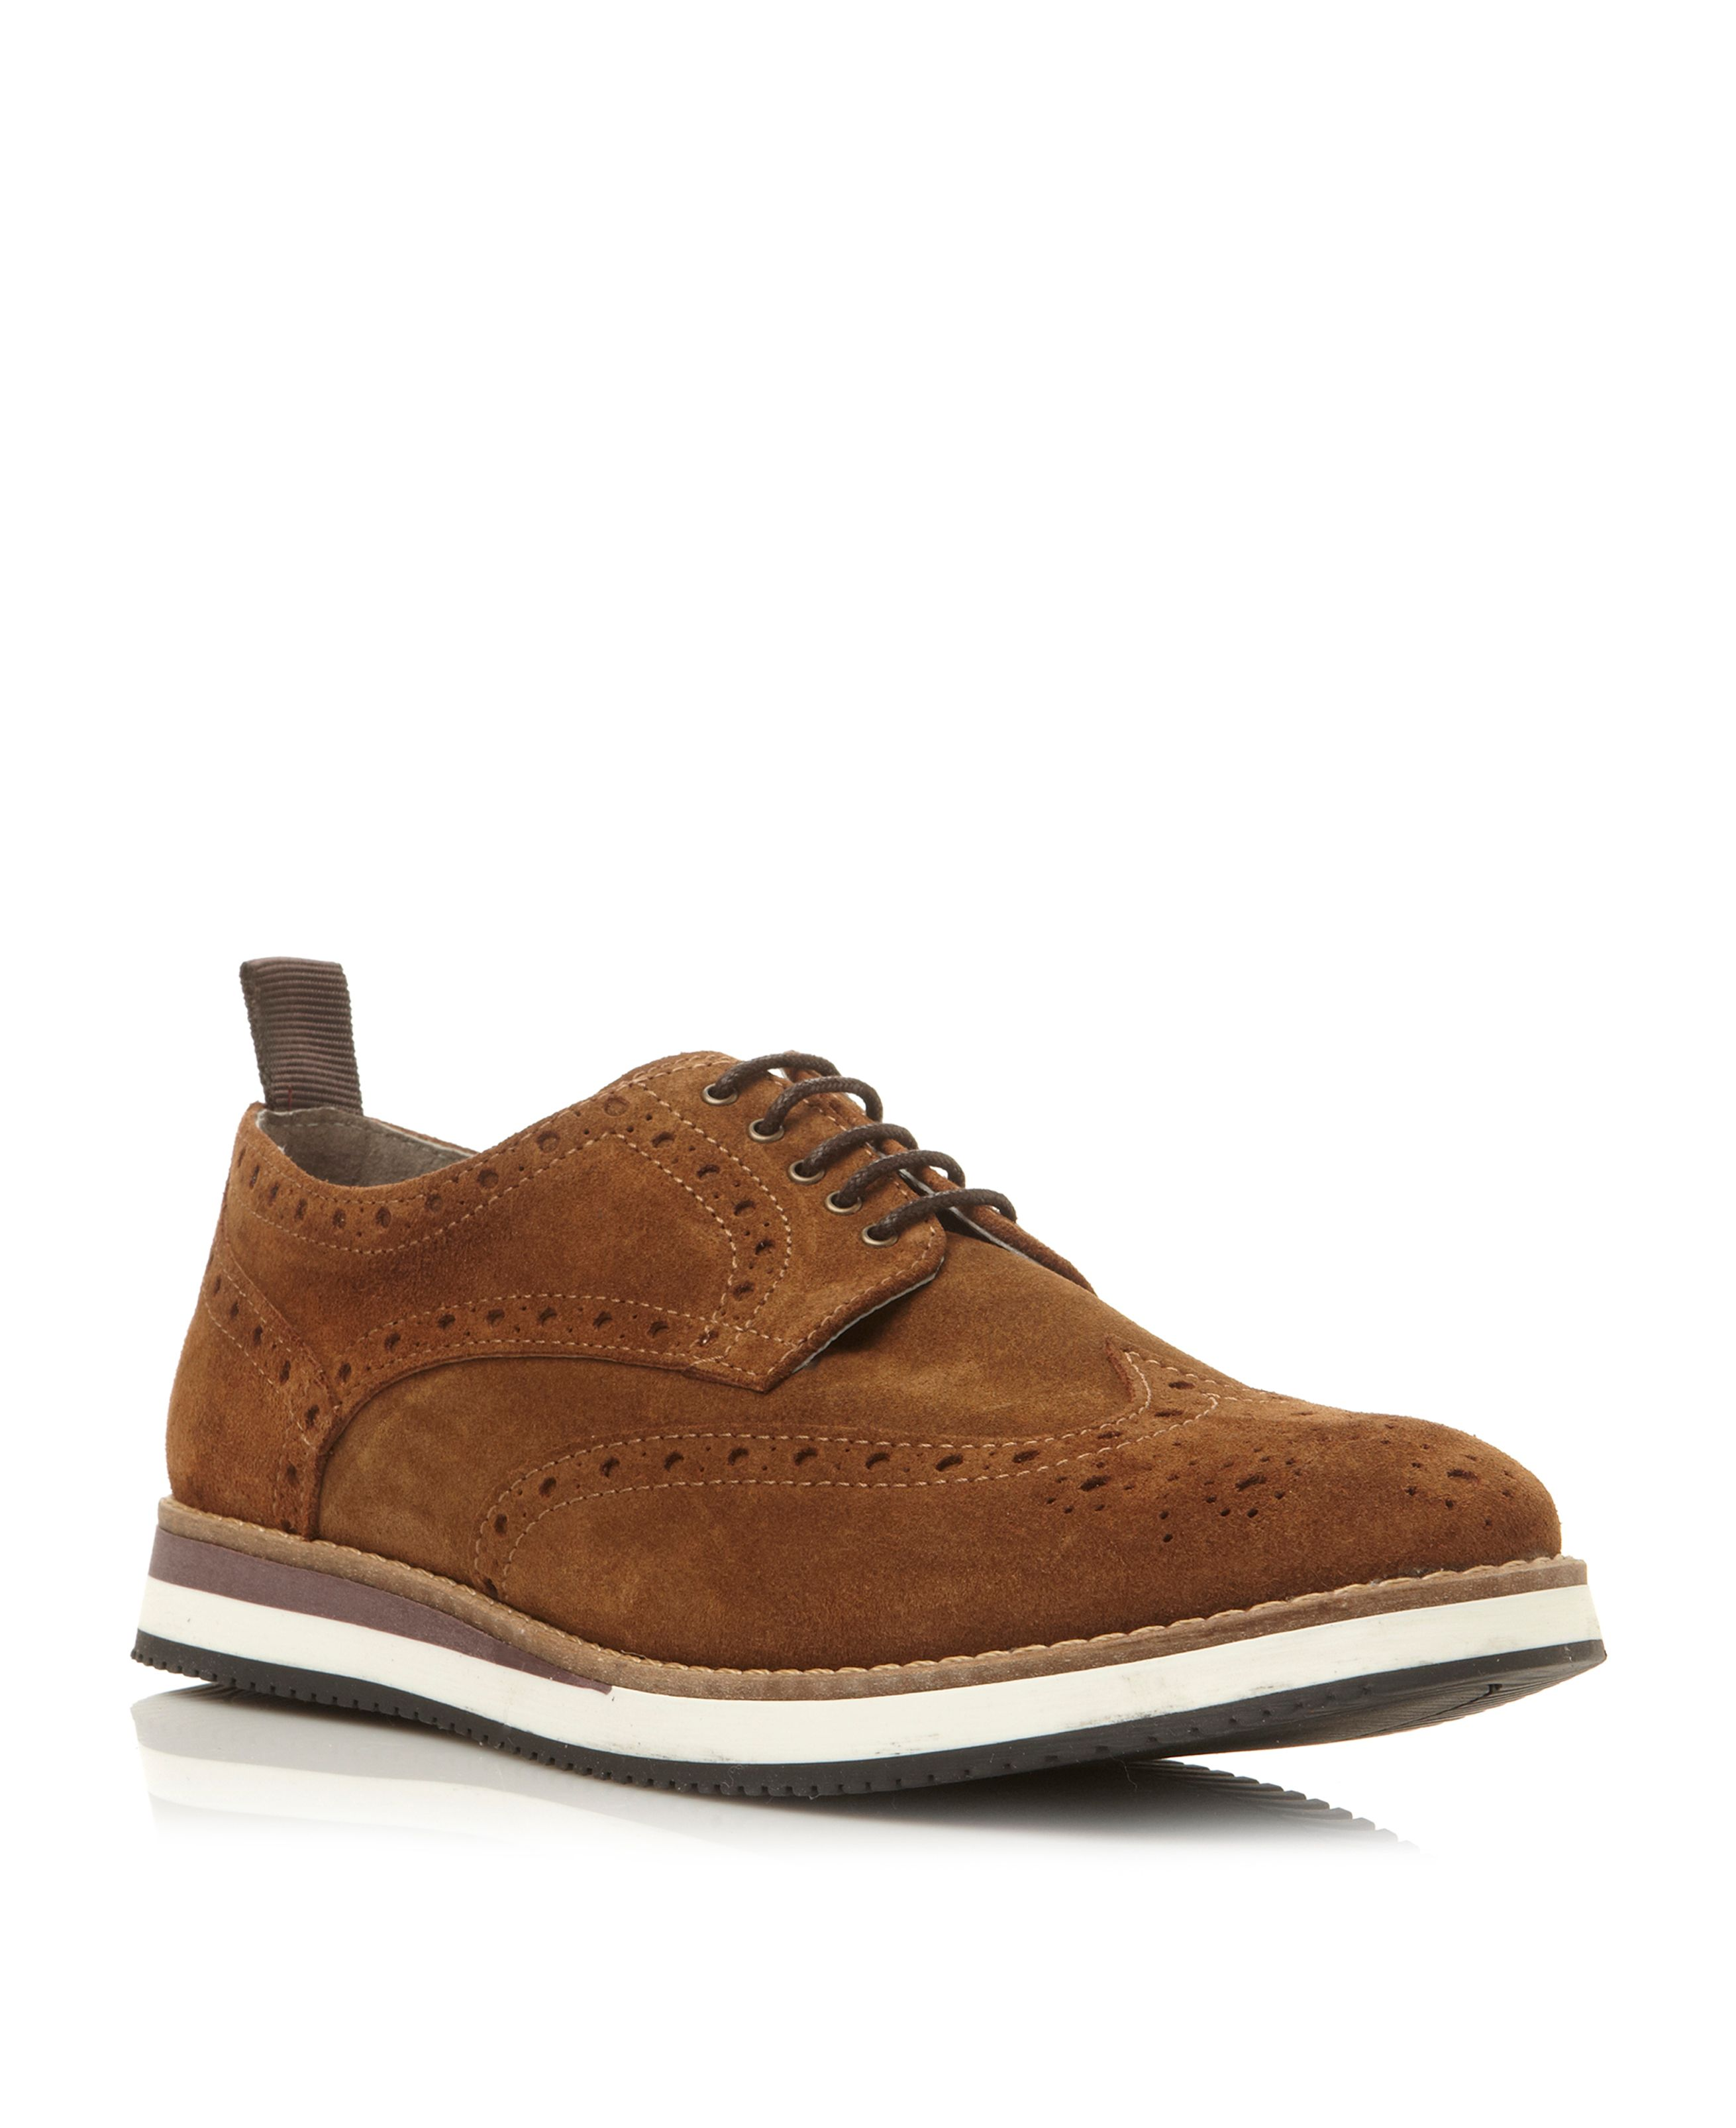 Brotherhood lace up brogue sporty shoes